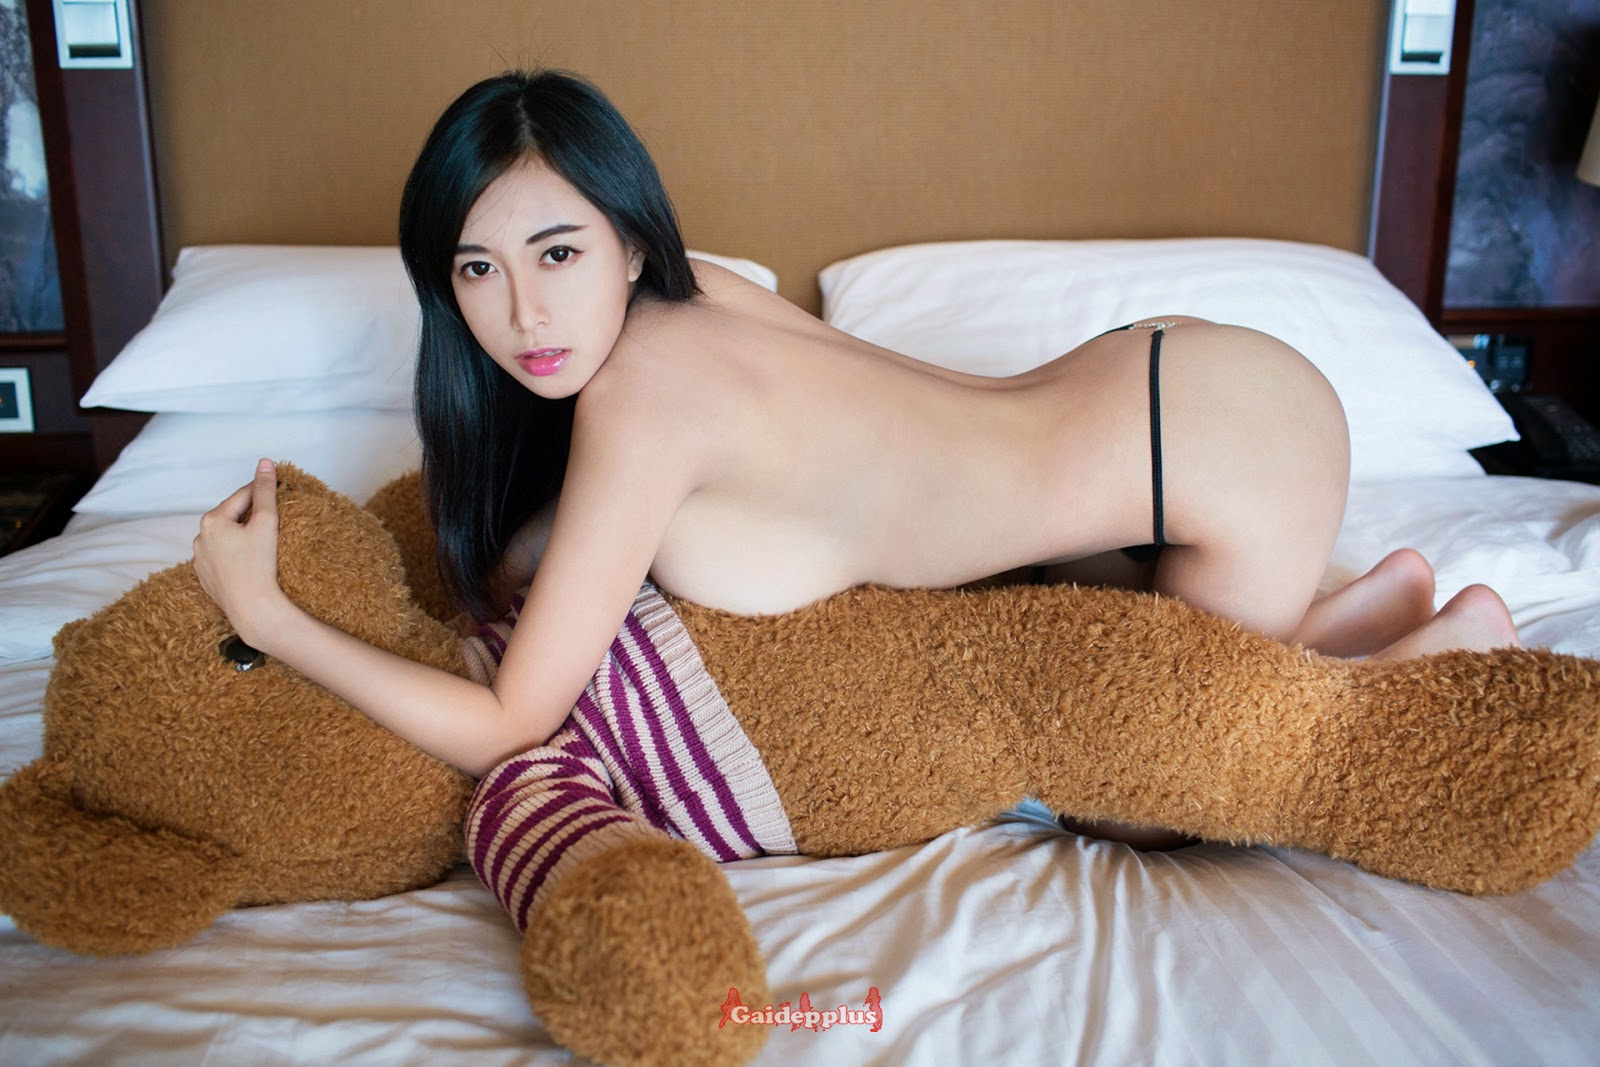 Bear naked girl with